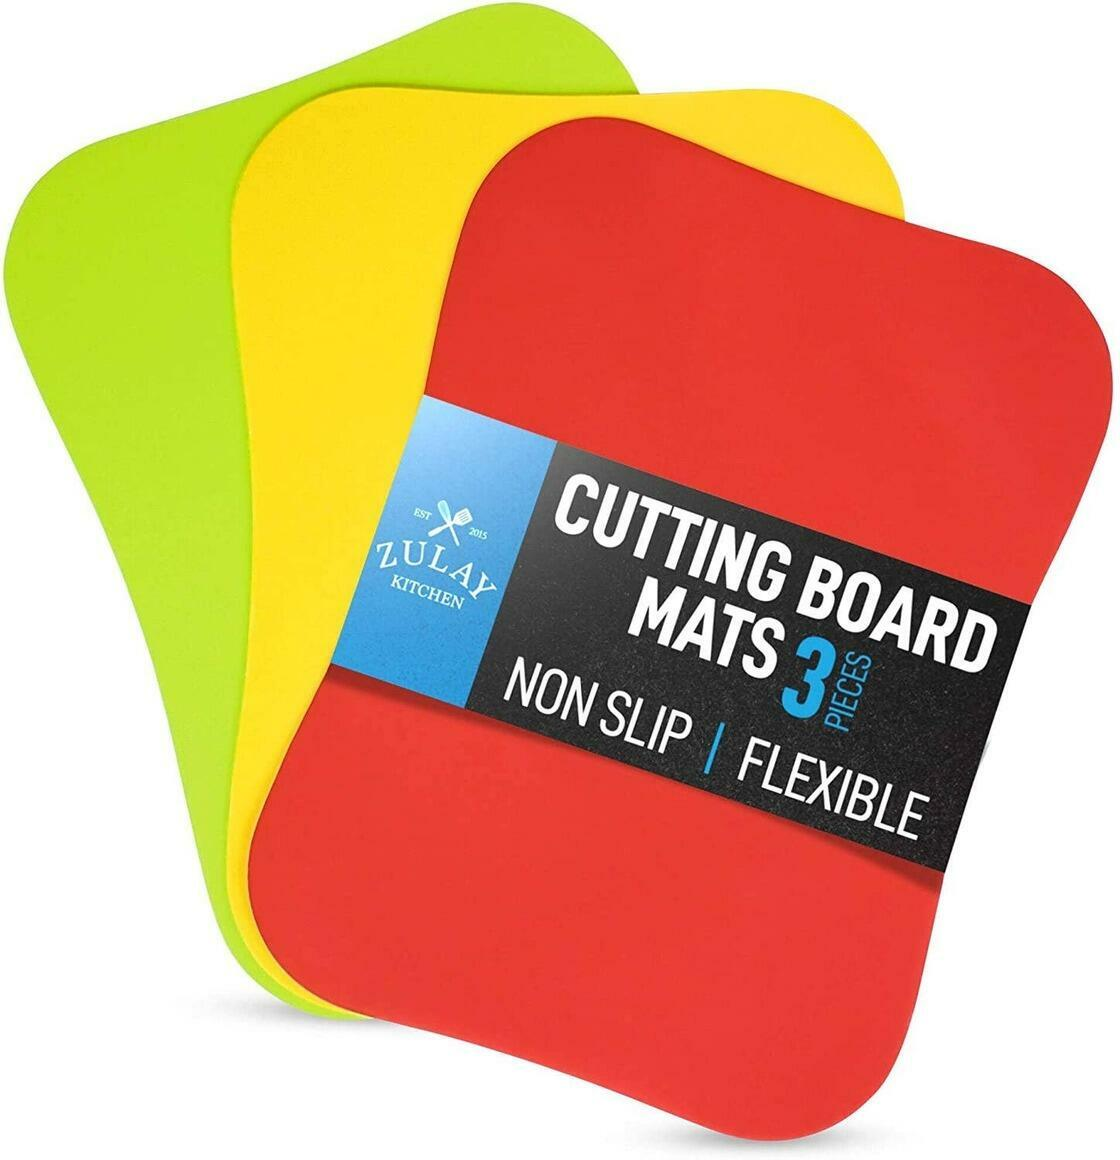 Extra Thick Flexible Cutting Board Mats Curved Edge 3 Boards | Trada Marketplace